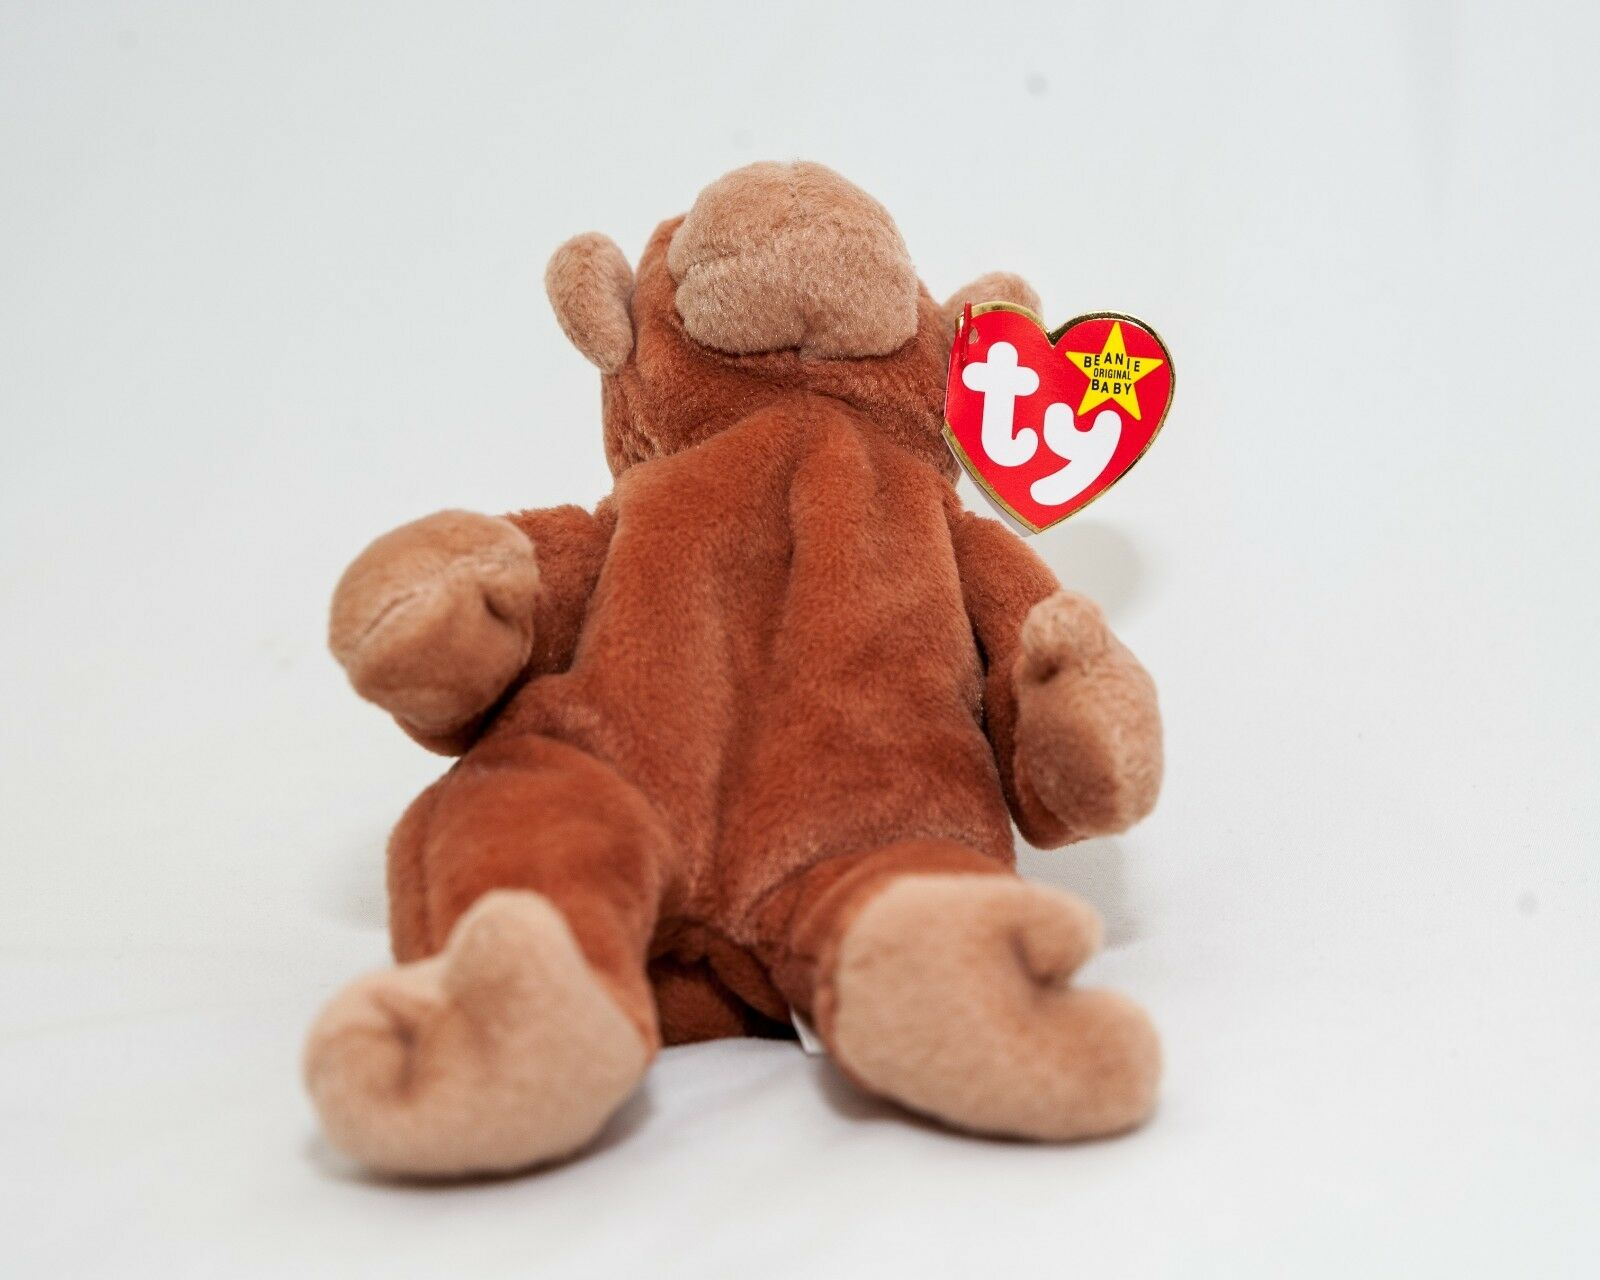 BONGO THE THE THE MONKEY Ty Beanie Baby 1995 - NO RED STAR - THE TAPED ON A STAR INSTEAD 7654c7